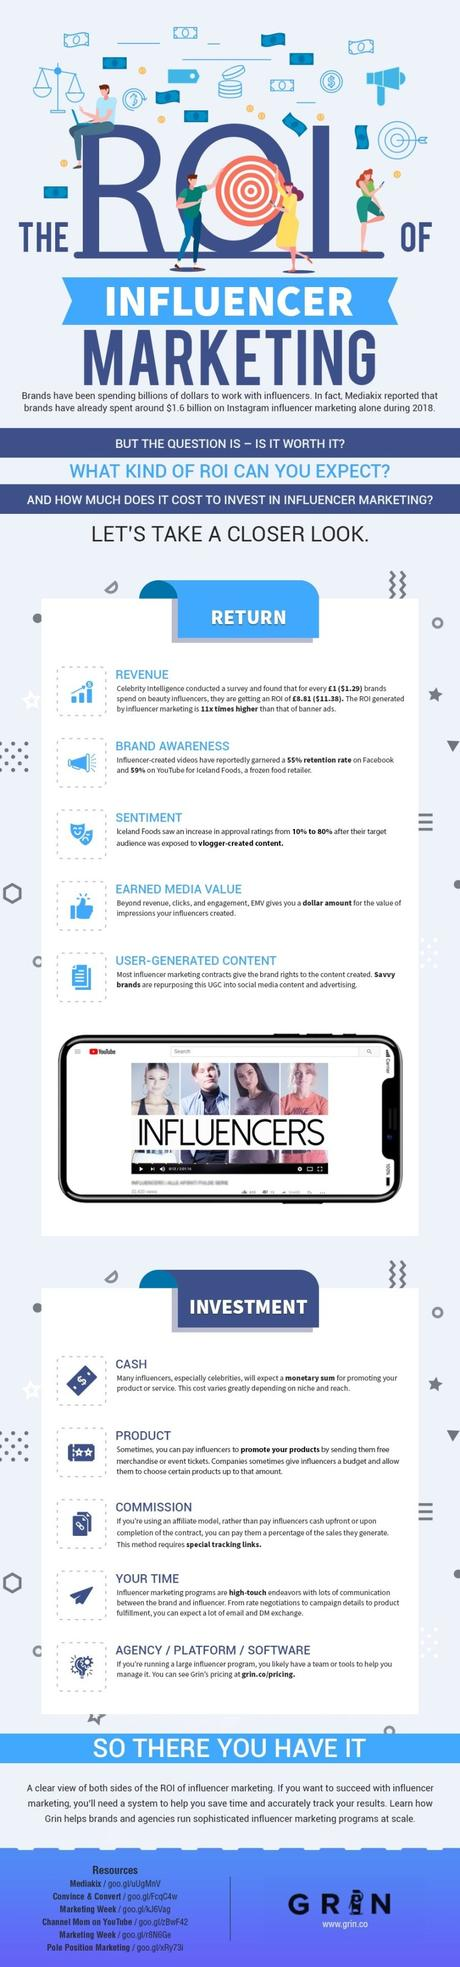 Influencer Marketing ROI: What Makes Up a Successful Campaign?